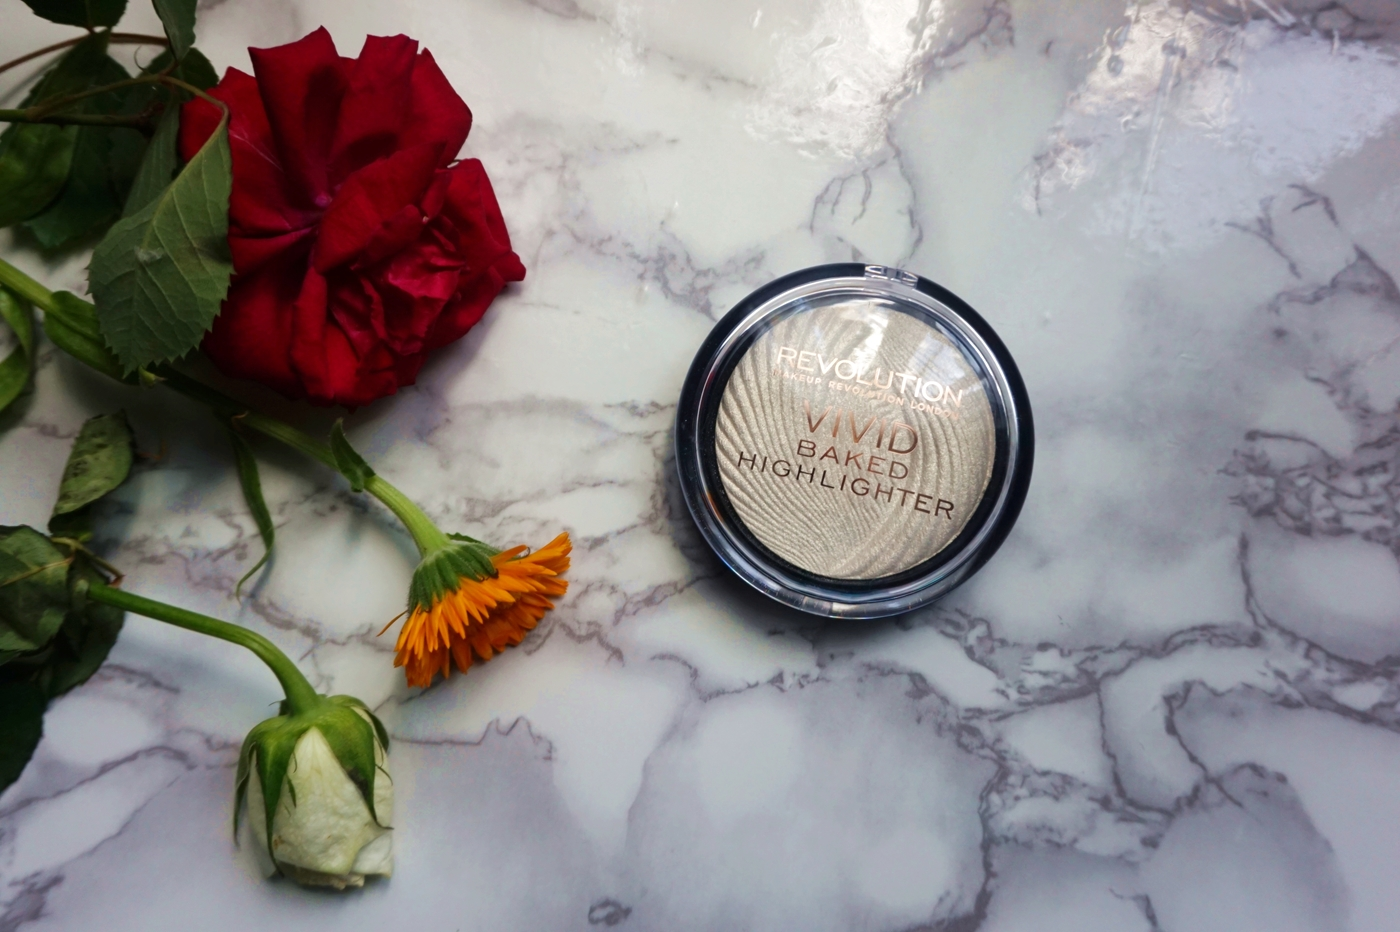 Vivid Baked highlighter Makeup Revolution